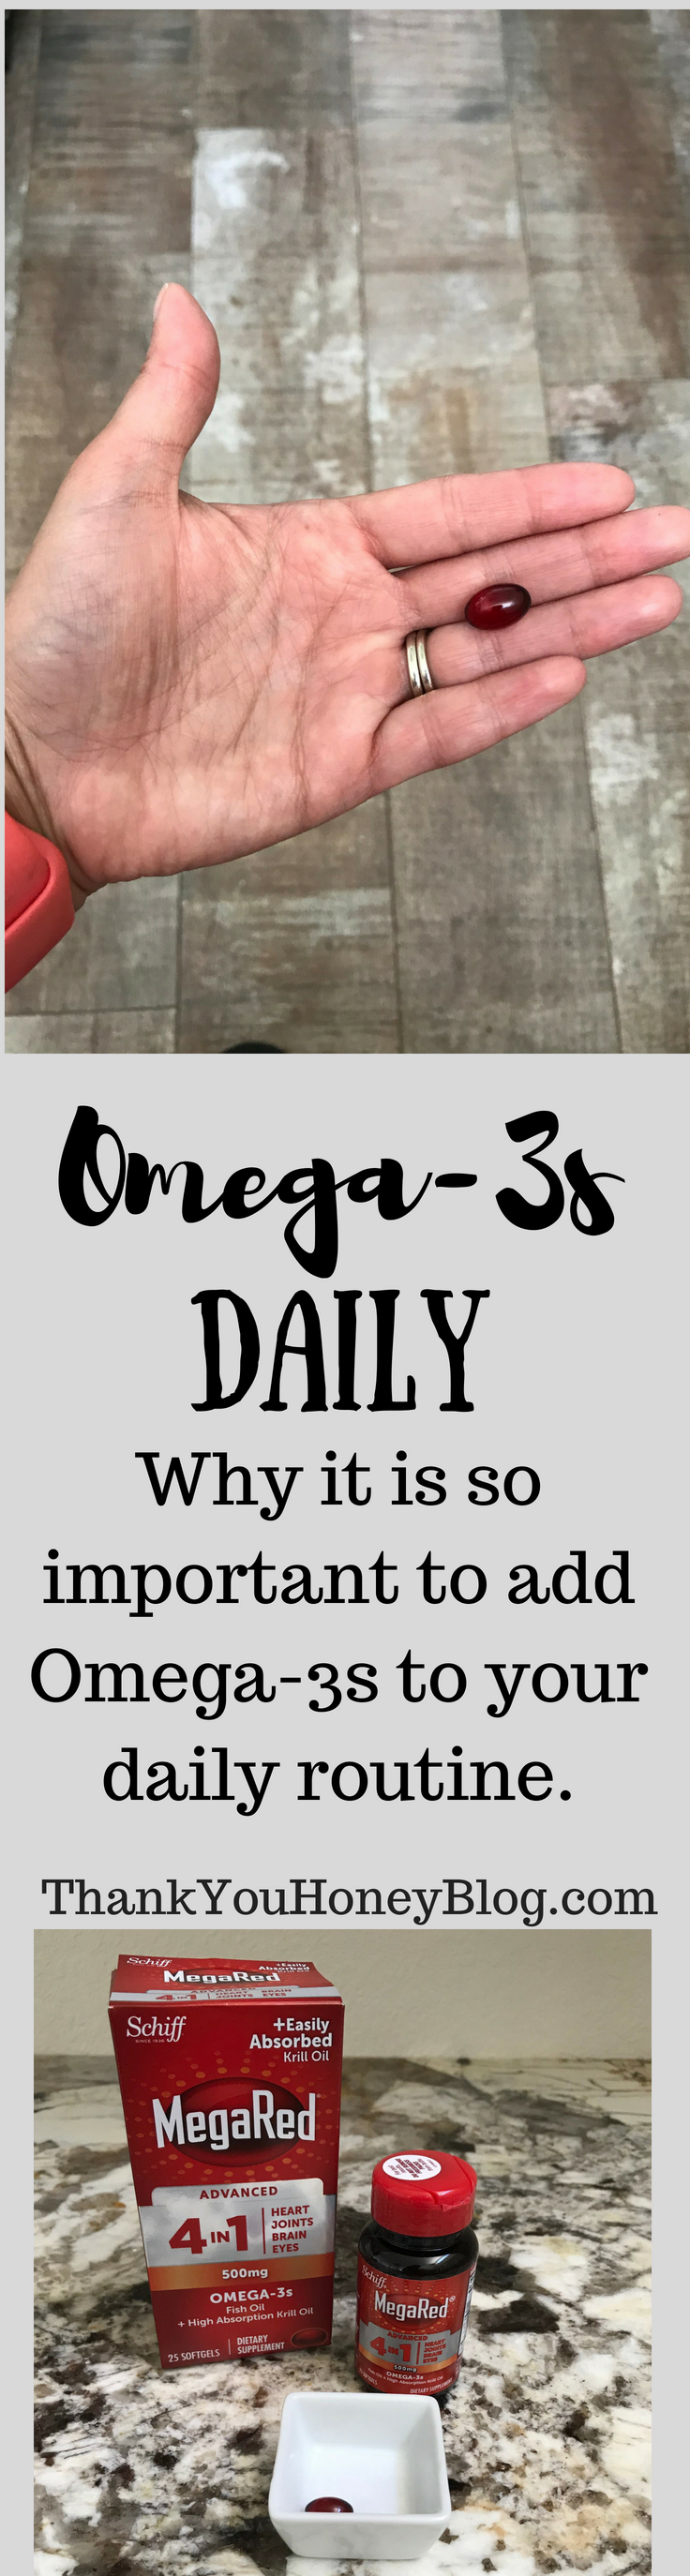 Omega-3s Daily